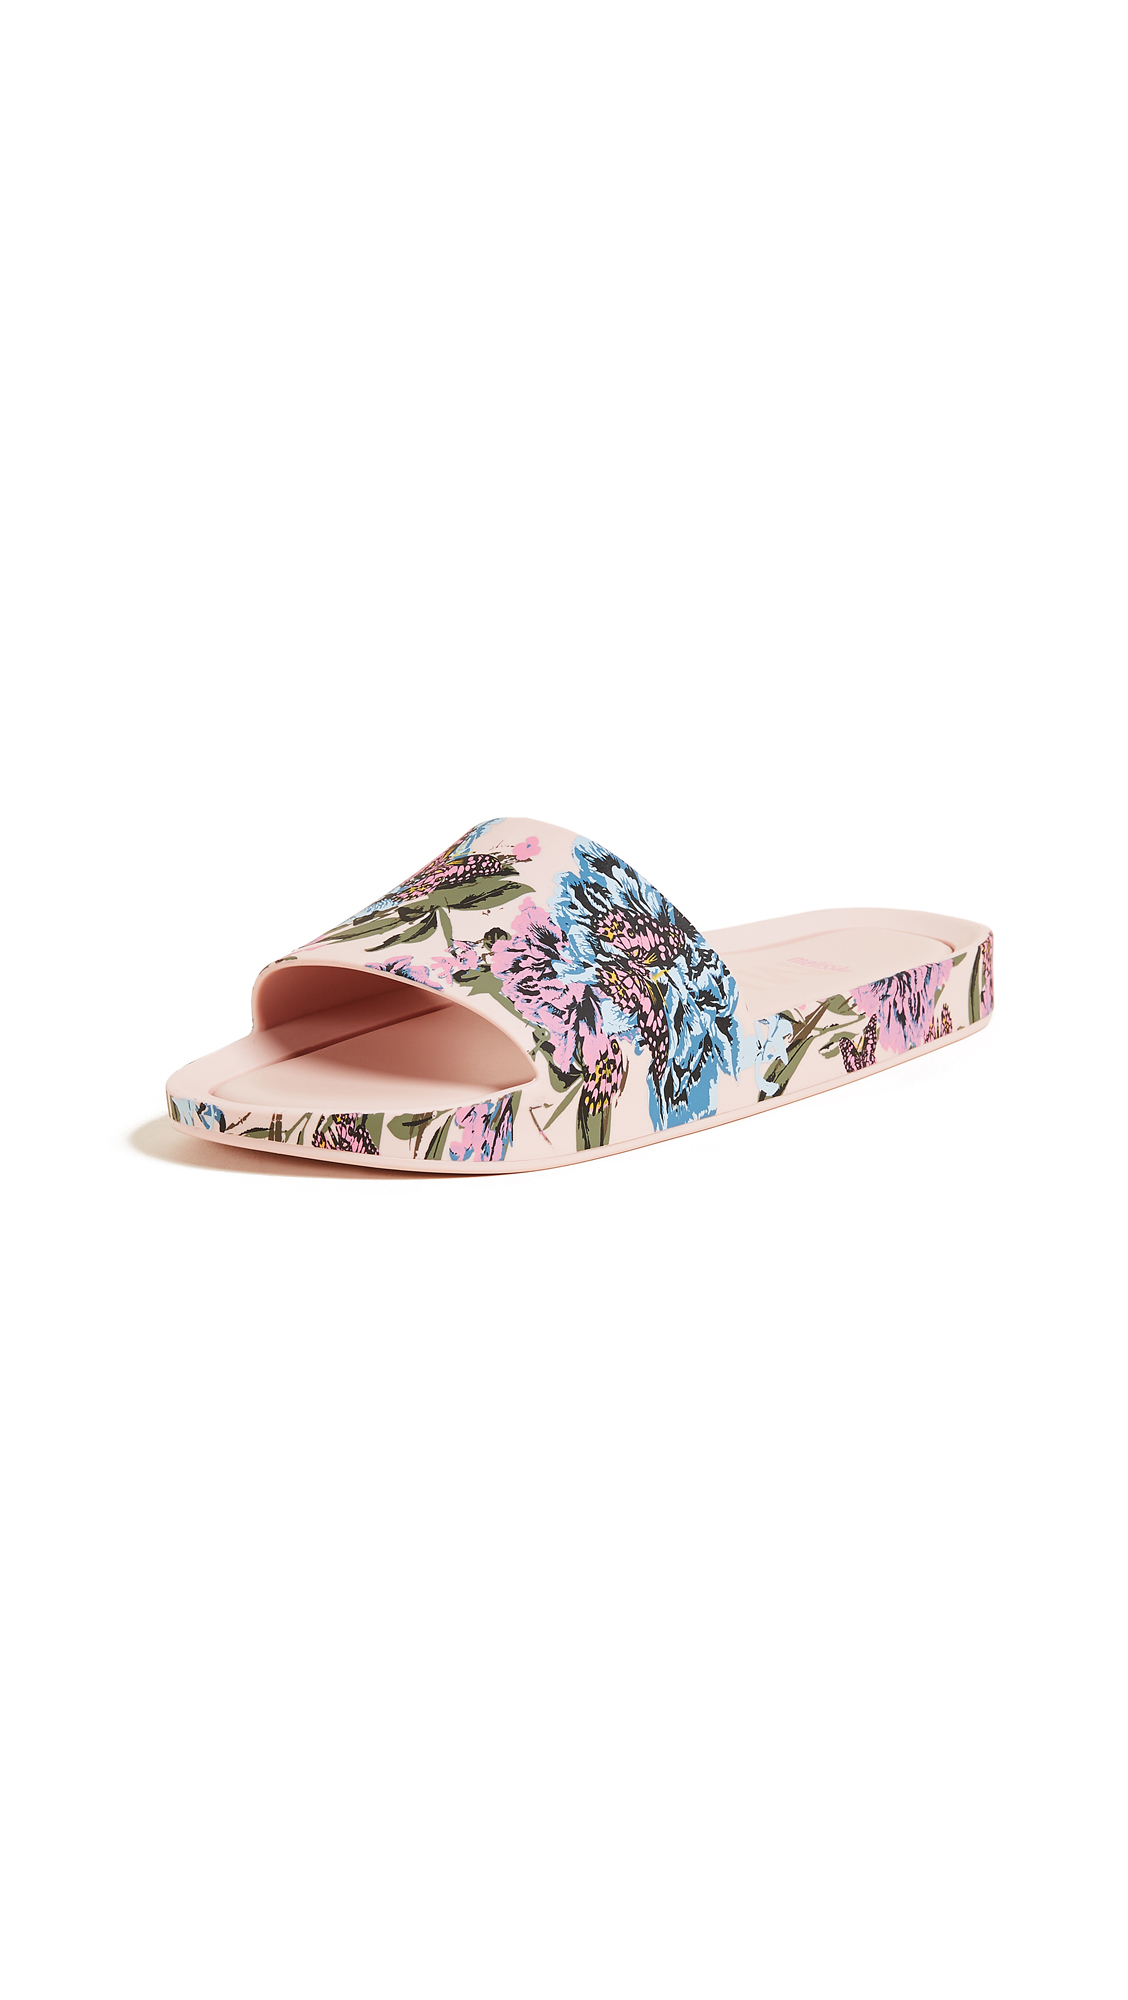 Melissa Beach Slides III - Pink/Blue